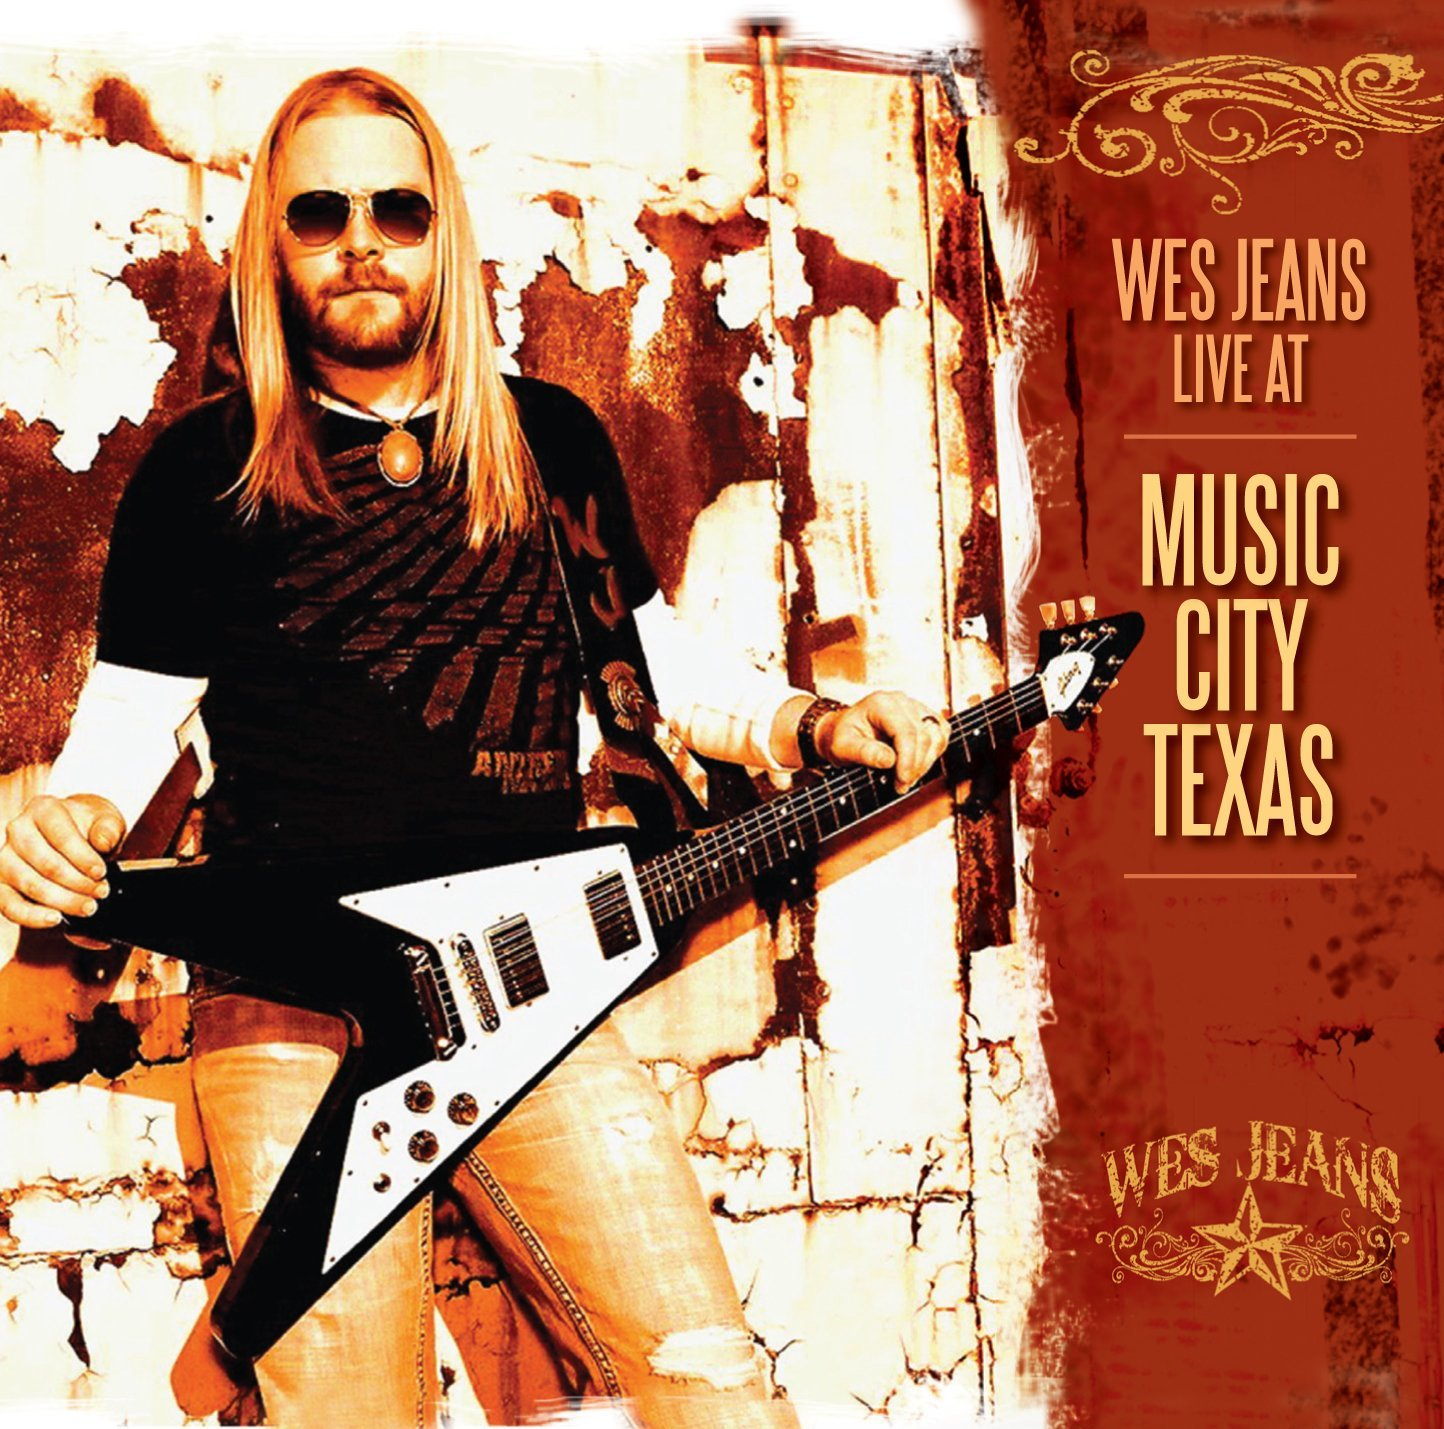 Wes Jeans Live At Music City Texas